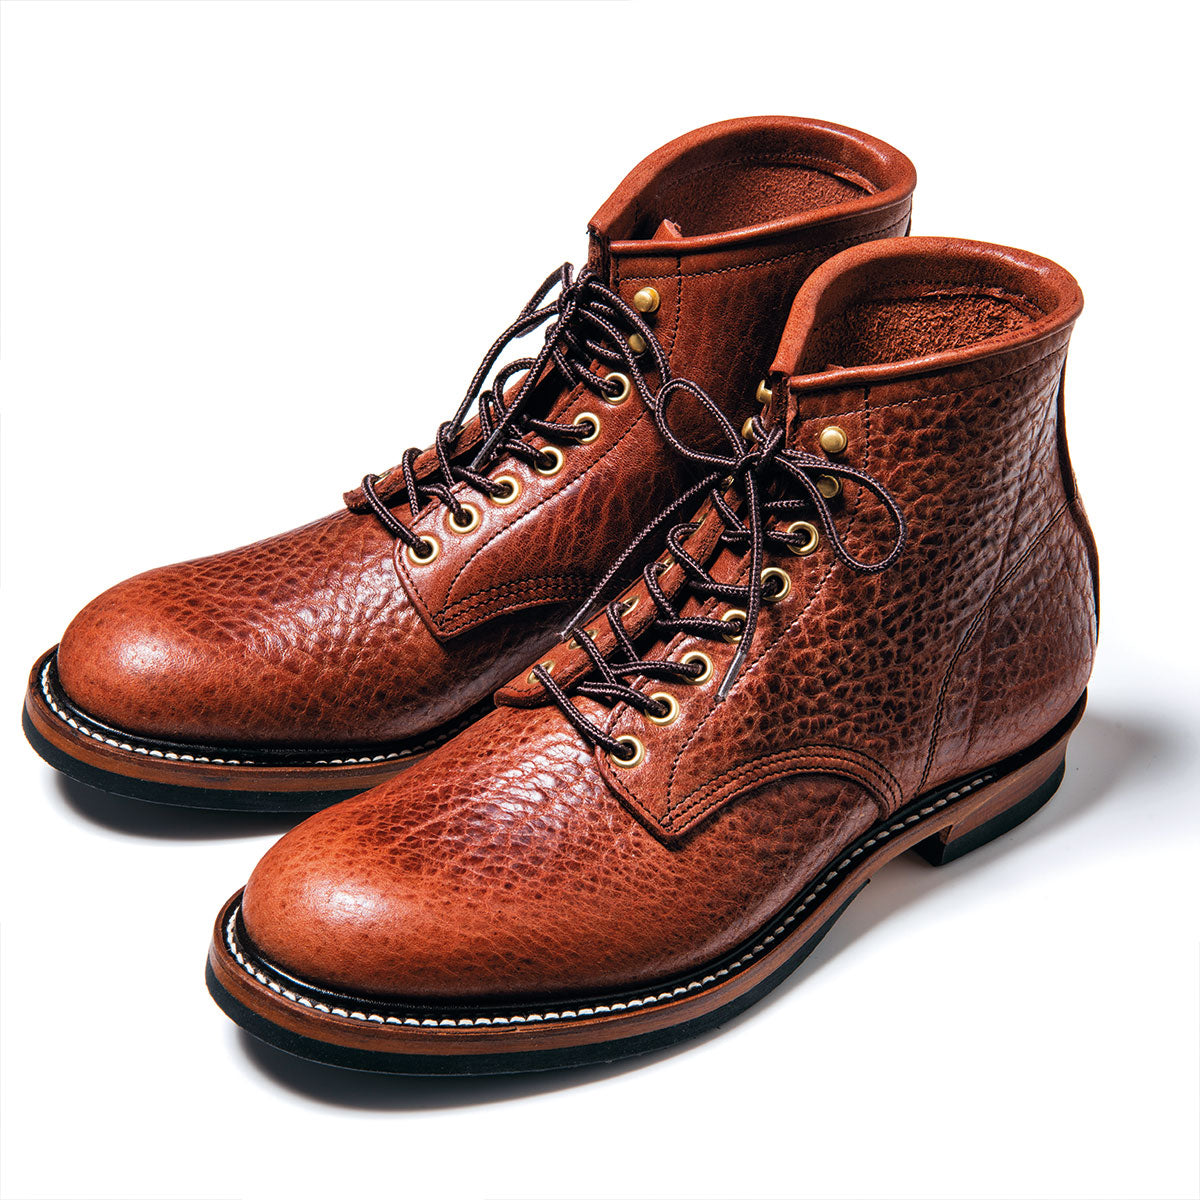 Pre-Order: Bull Hide Service Boots in Brown (BS-02)